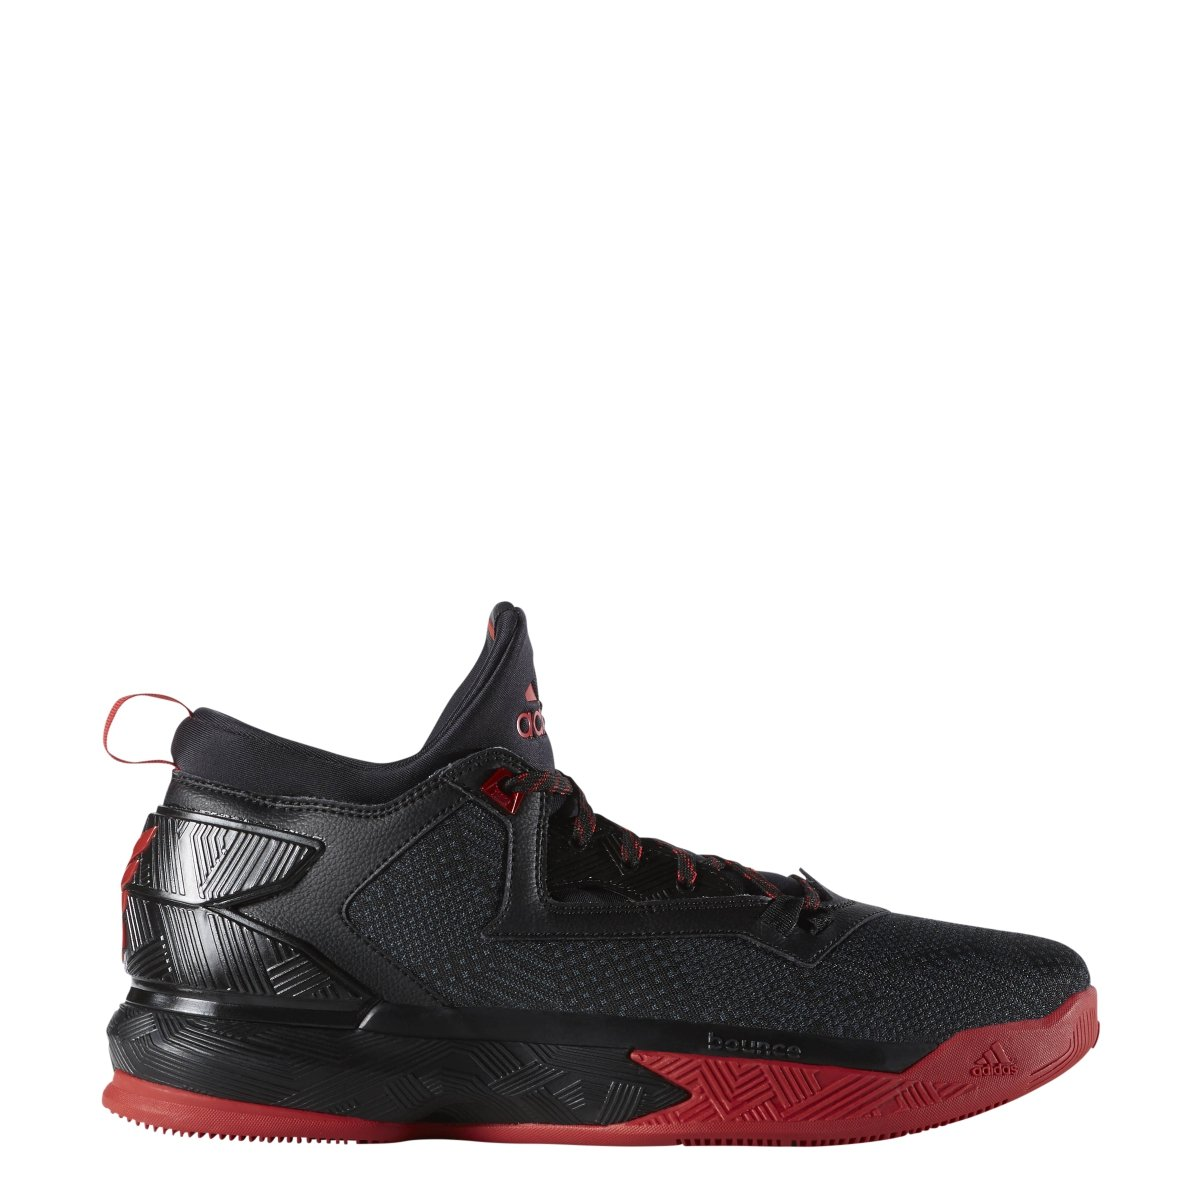 release date a8793 c8858 adidas D Lillard 2 Mens Basketball Shoe product image